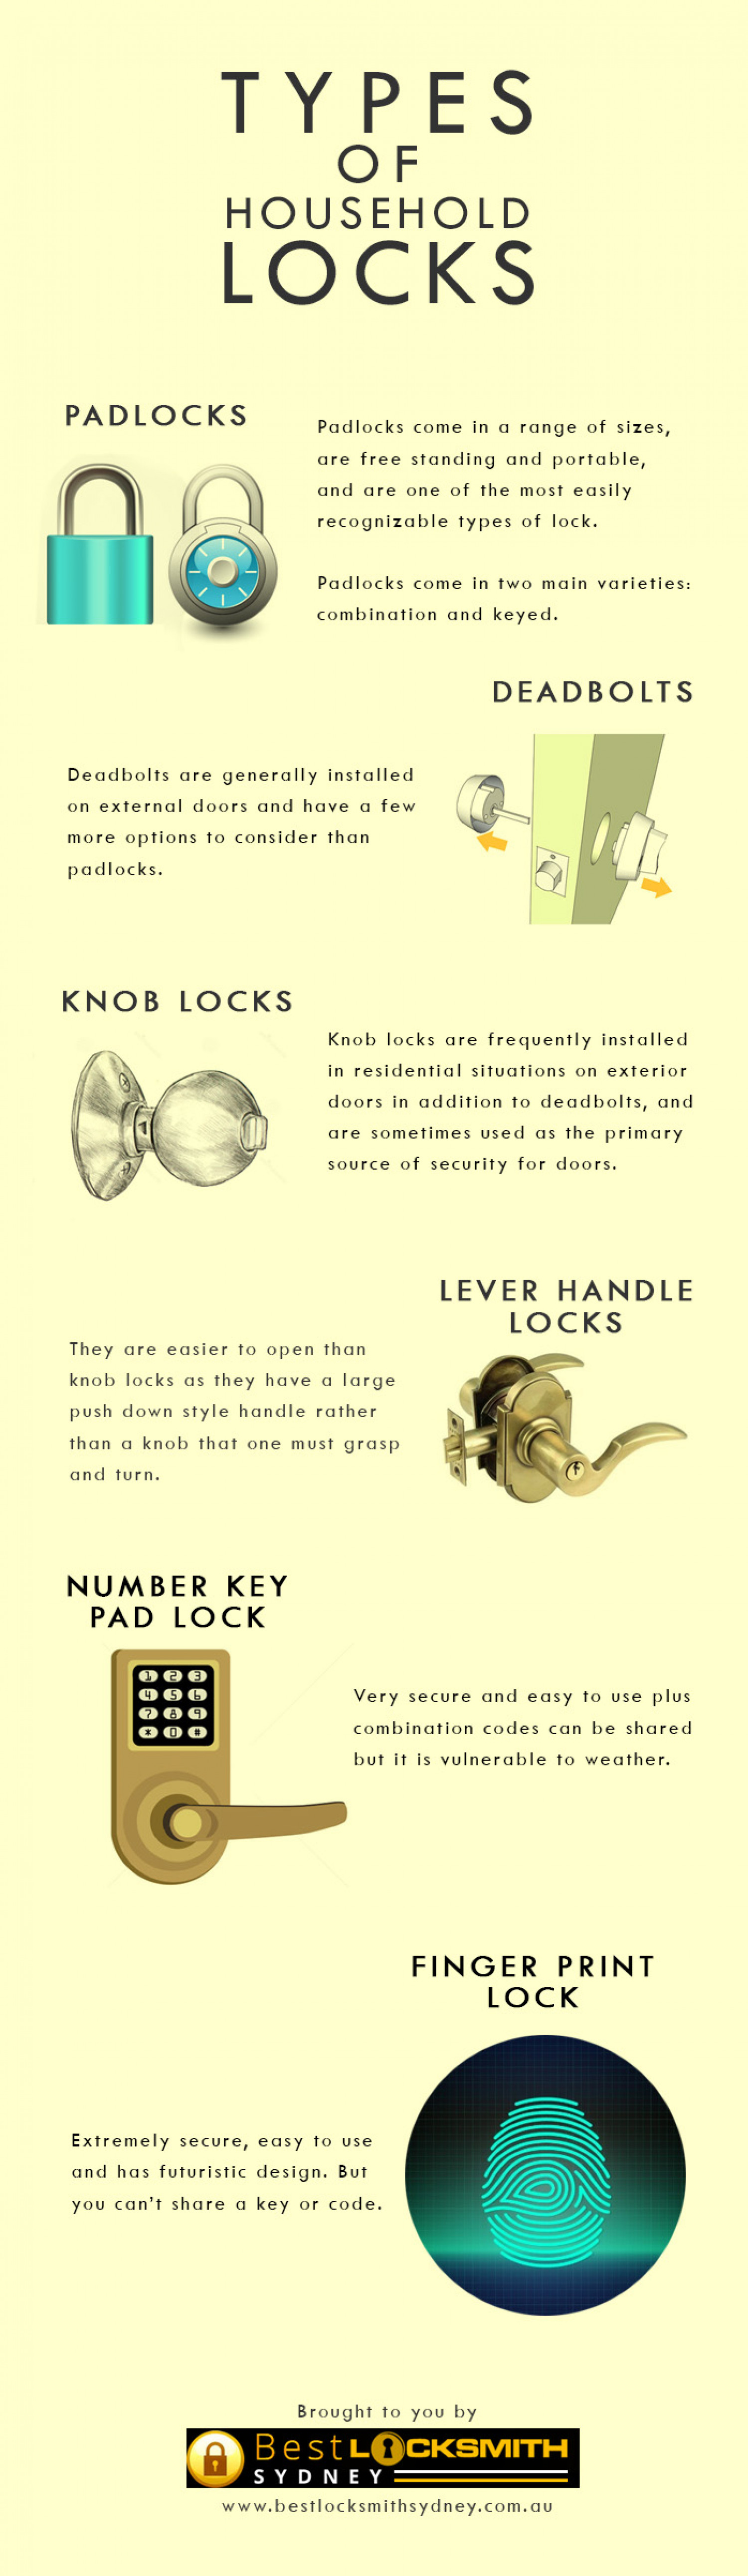 Types of Household Locks Infographic